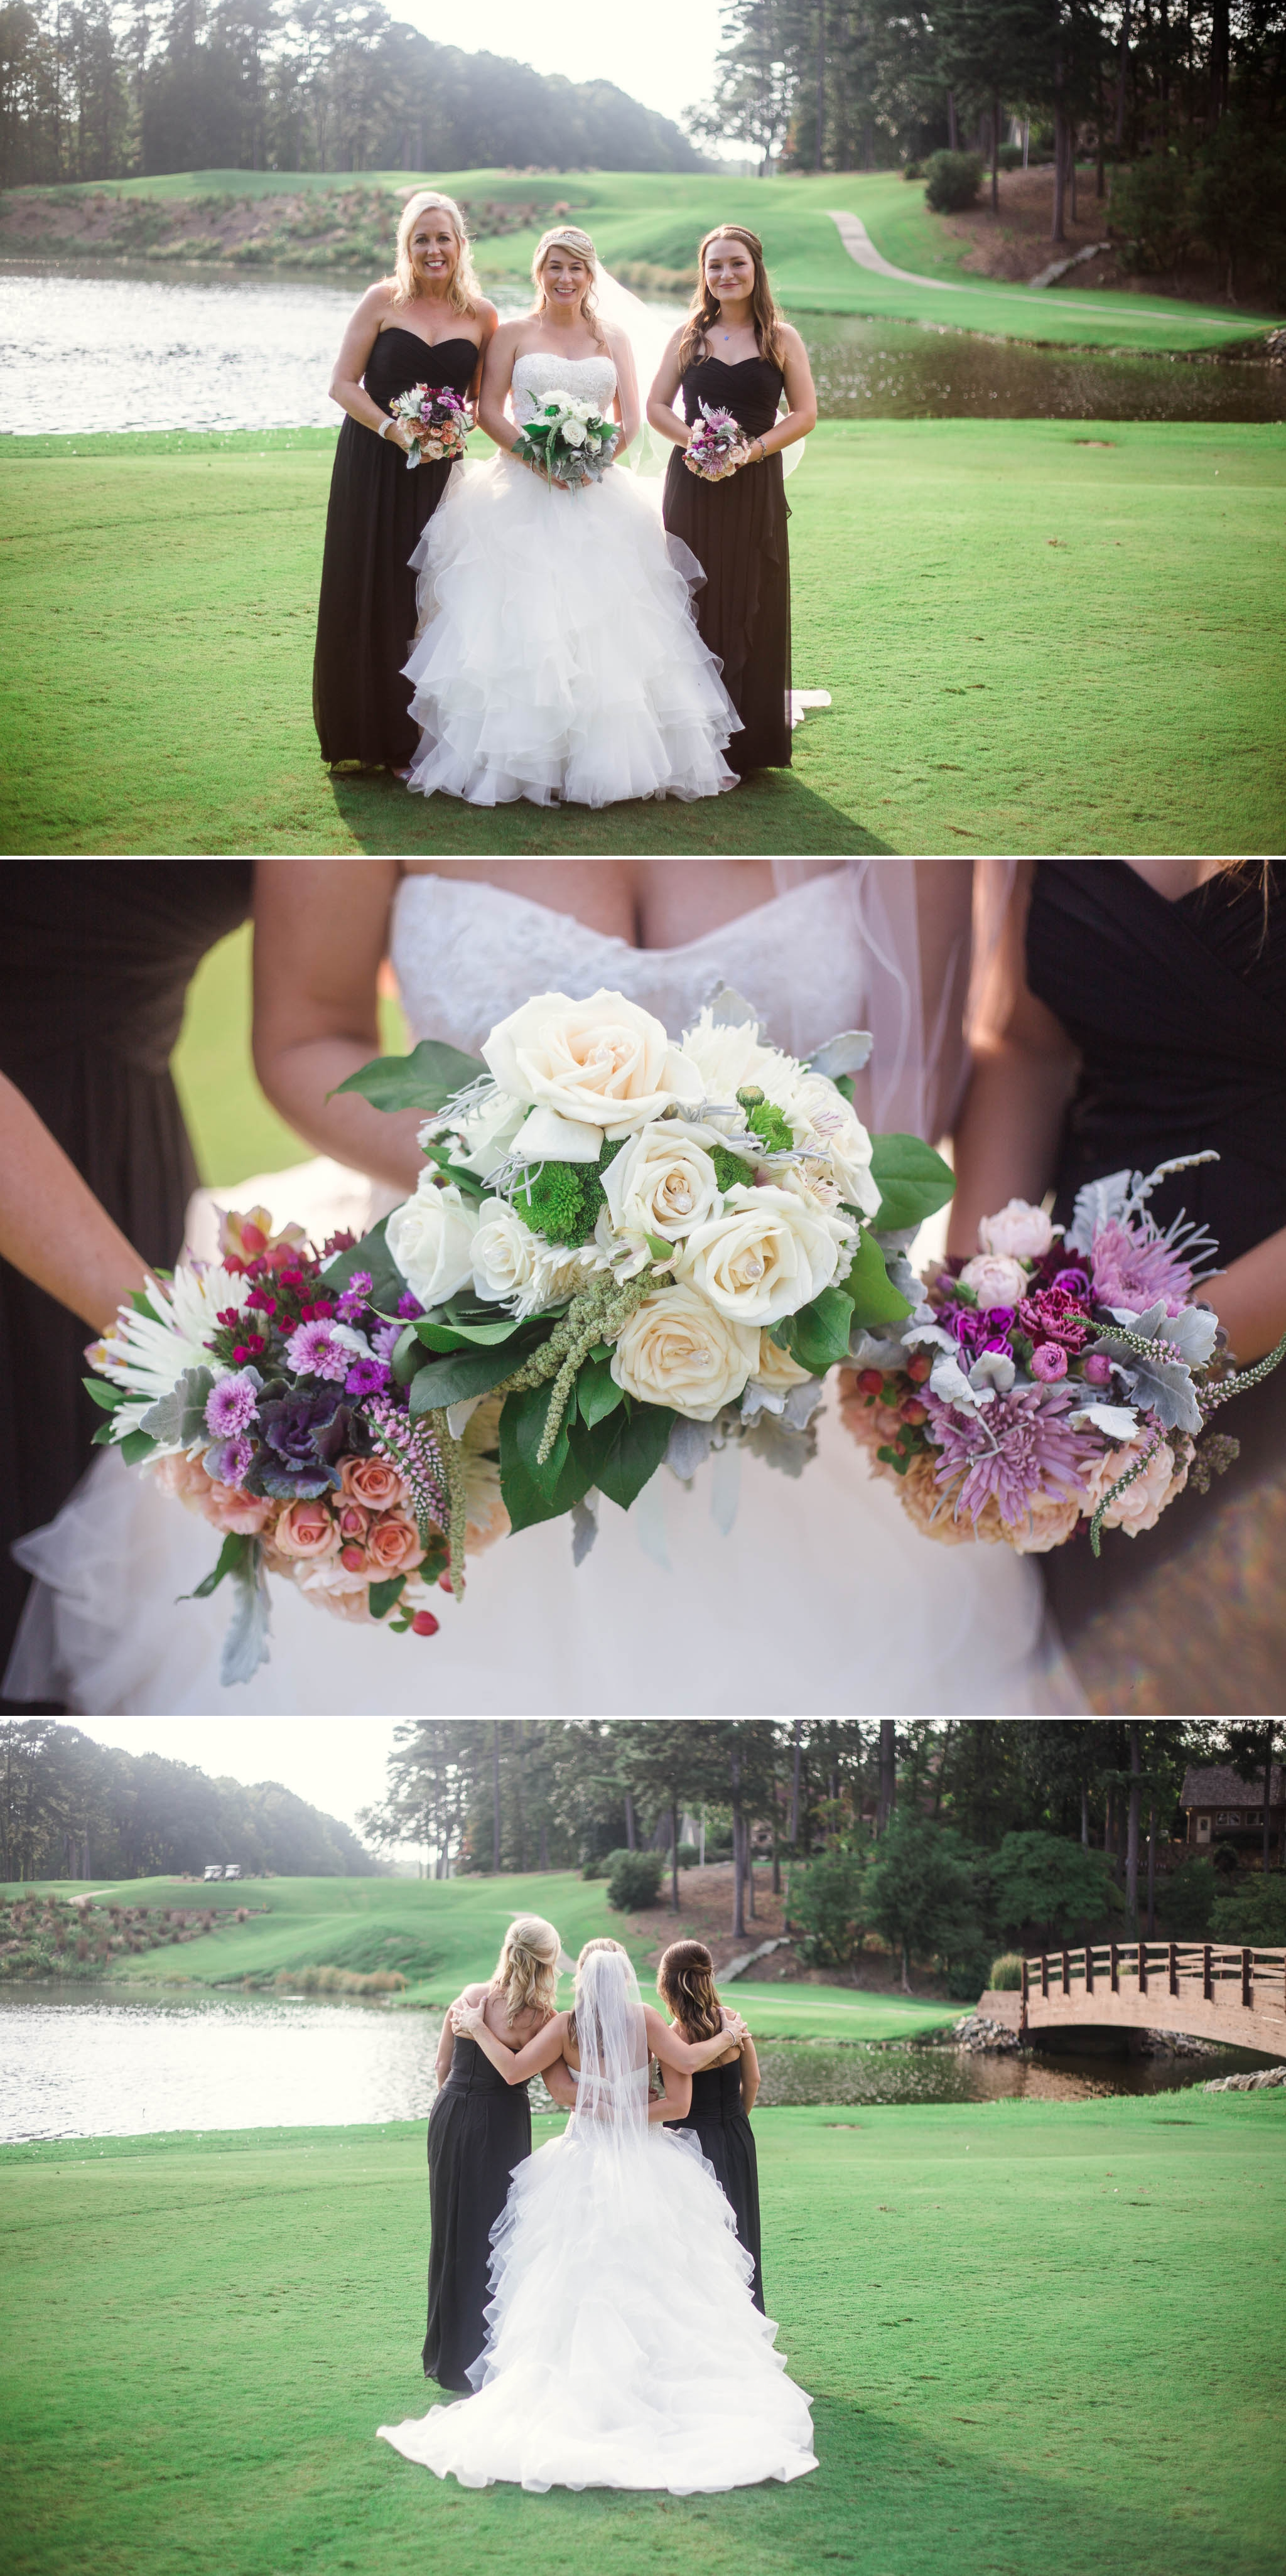 Bridesmaids with the bride - Dona + Doug - MacGregor Downs Country Club in Cary, NC - Raleigh Wedding Photographer